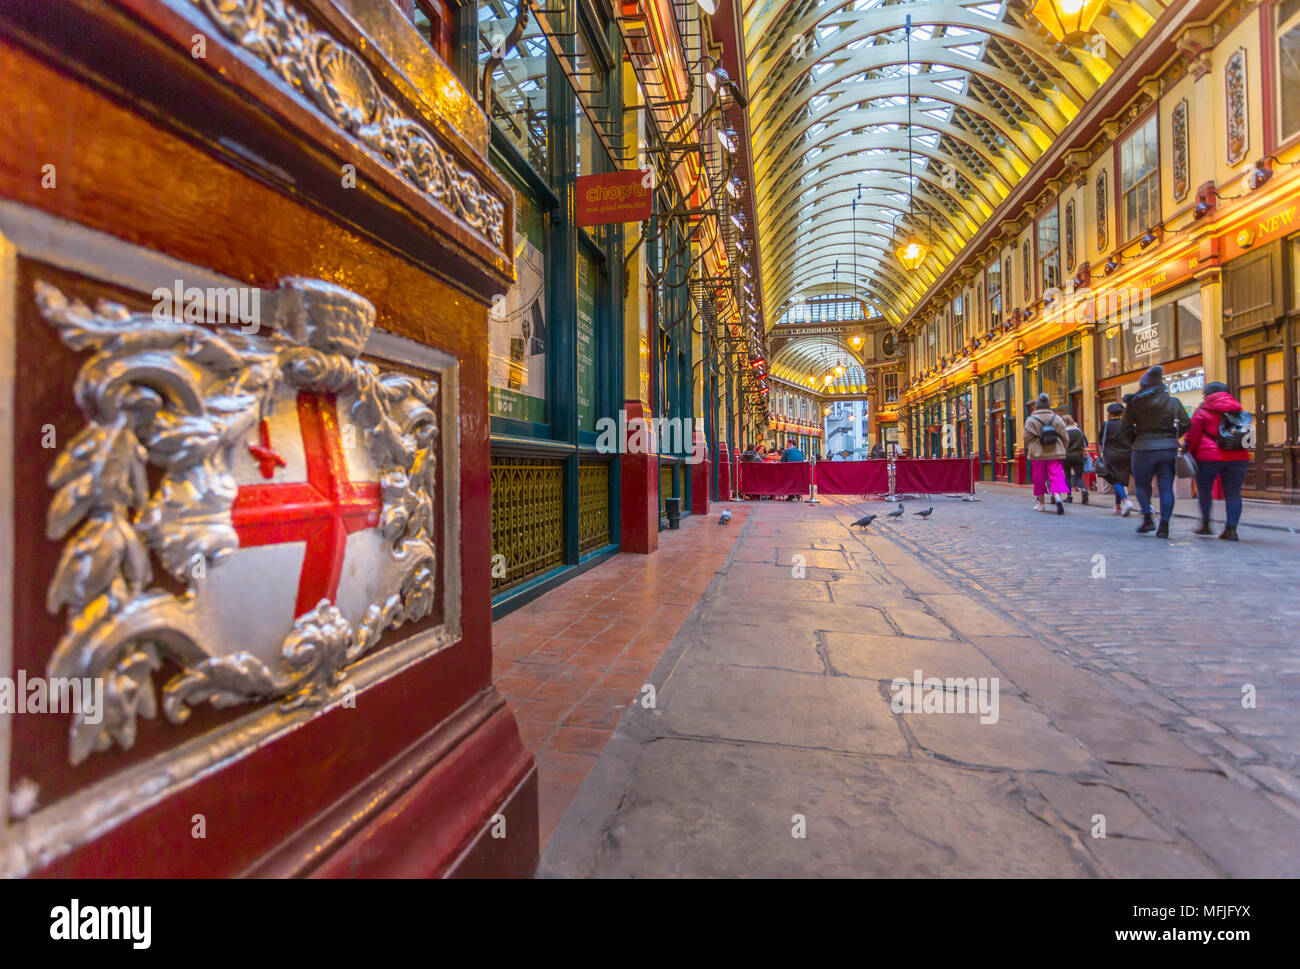 View of interior of Leadenhall Market, The City, London, England, United Kingdom, Europe - Stock Image